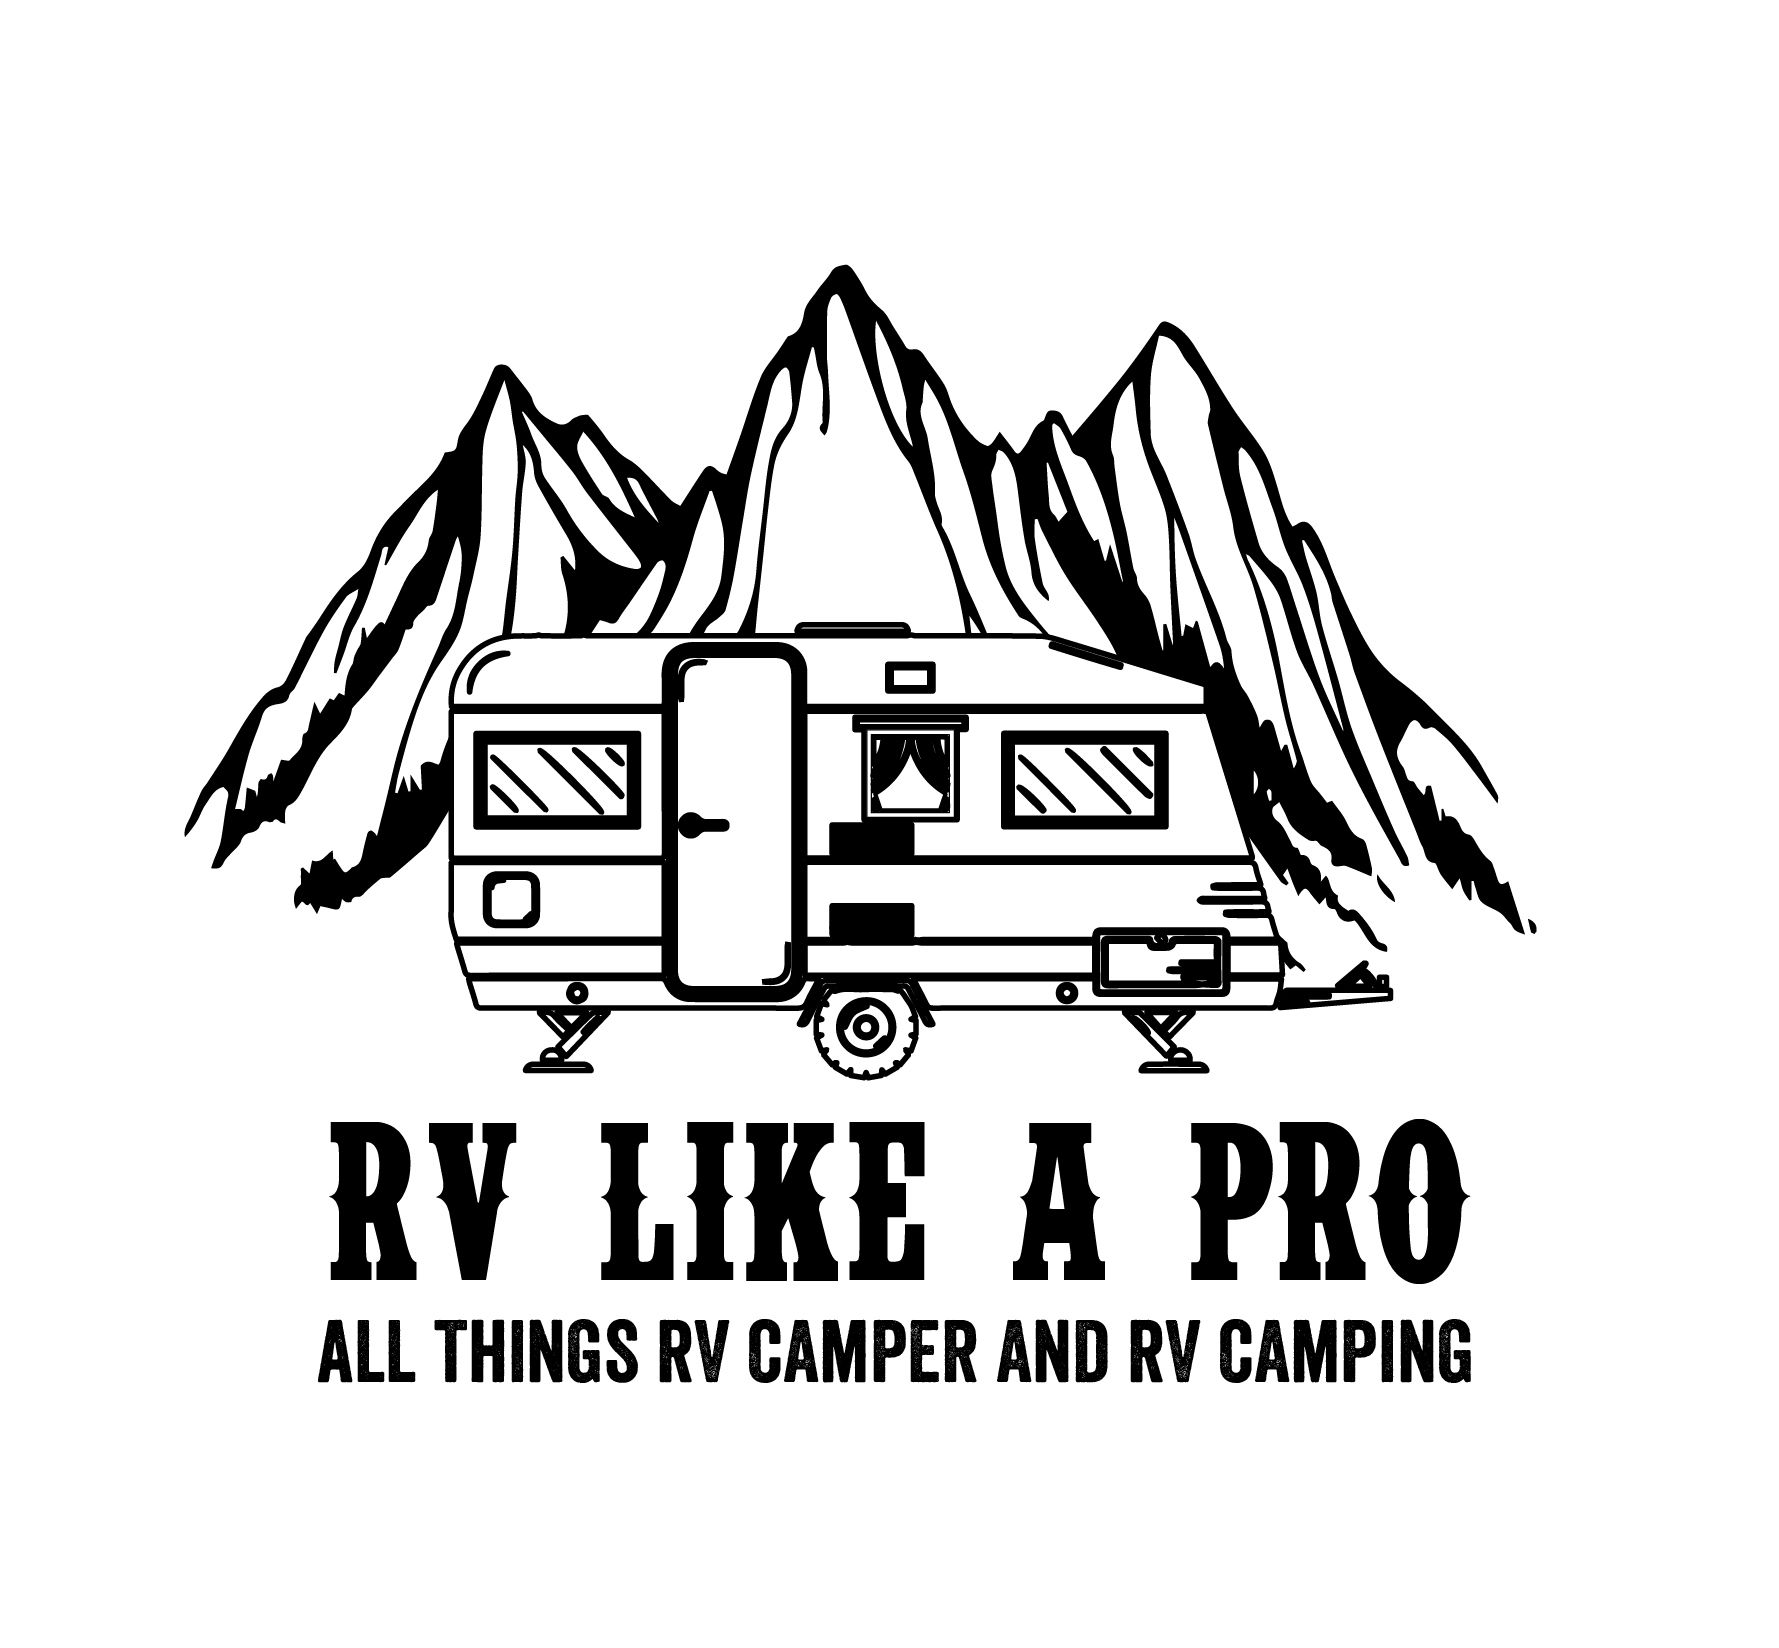 All Things Rv Camper And Rv Camping